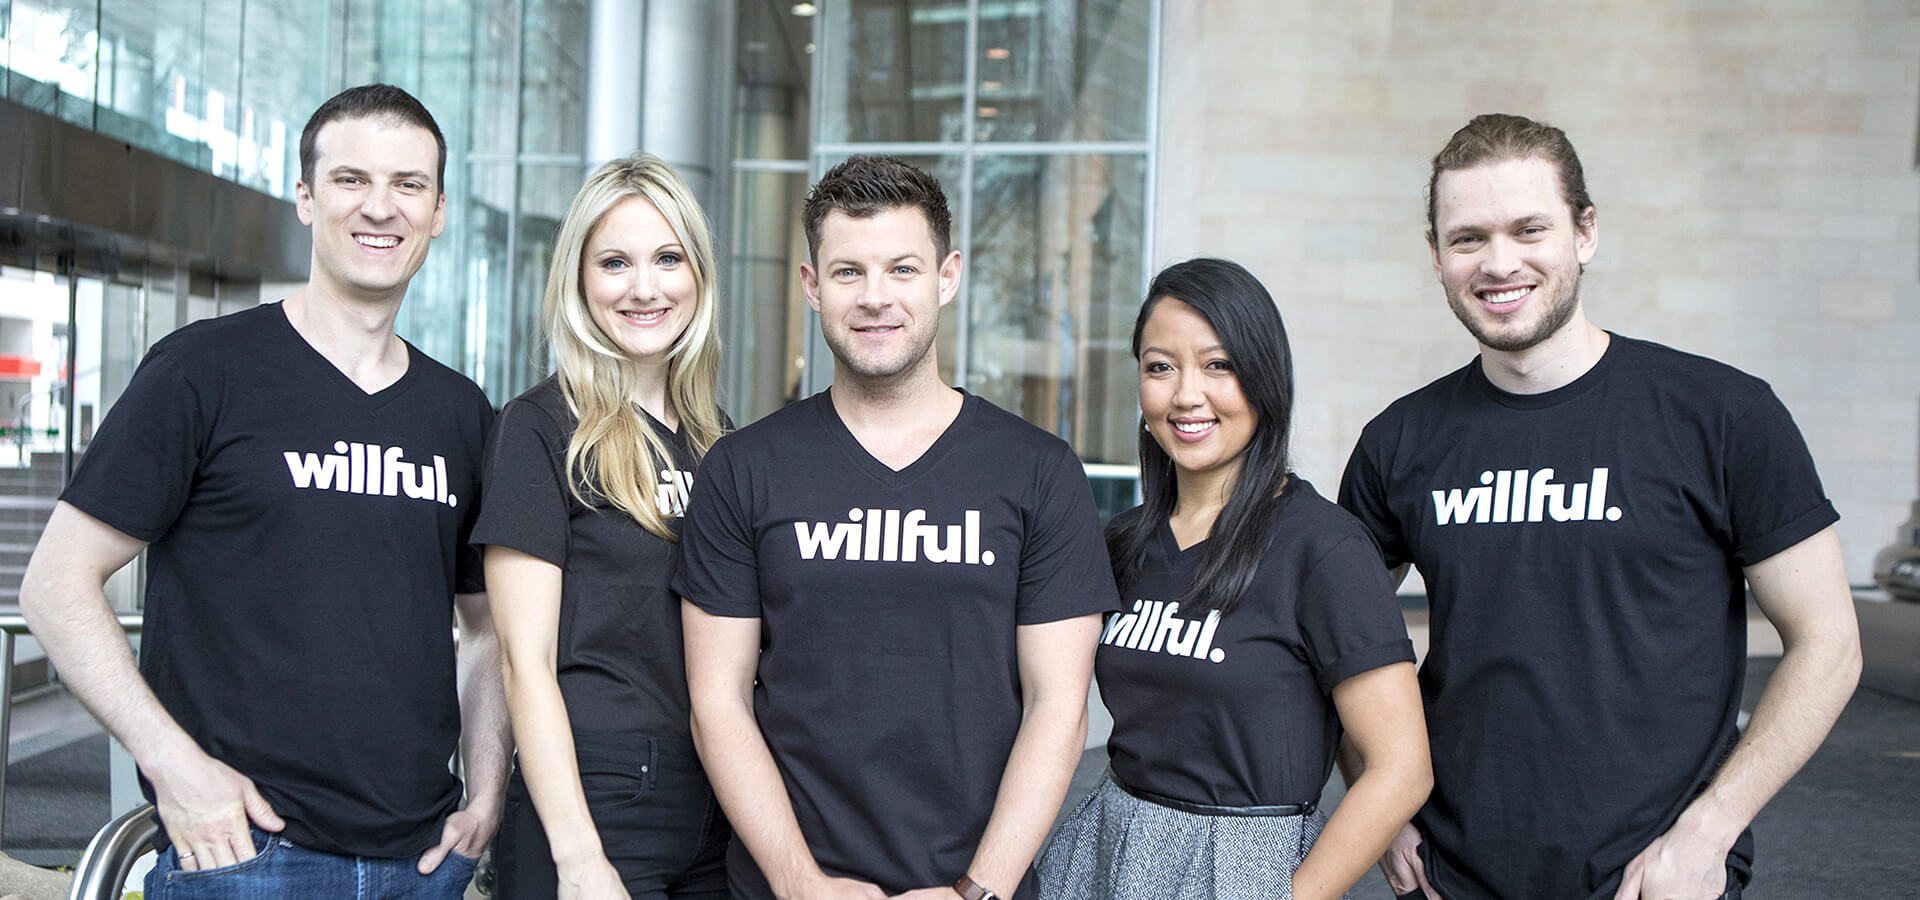 Members of the Willful team